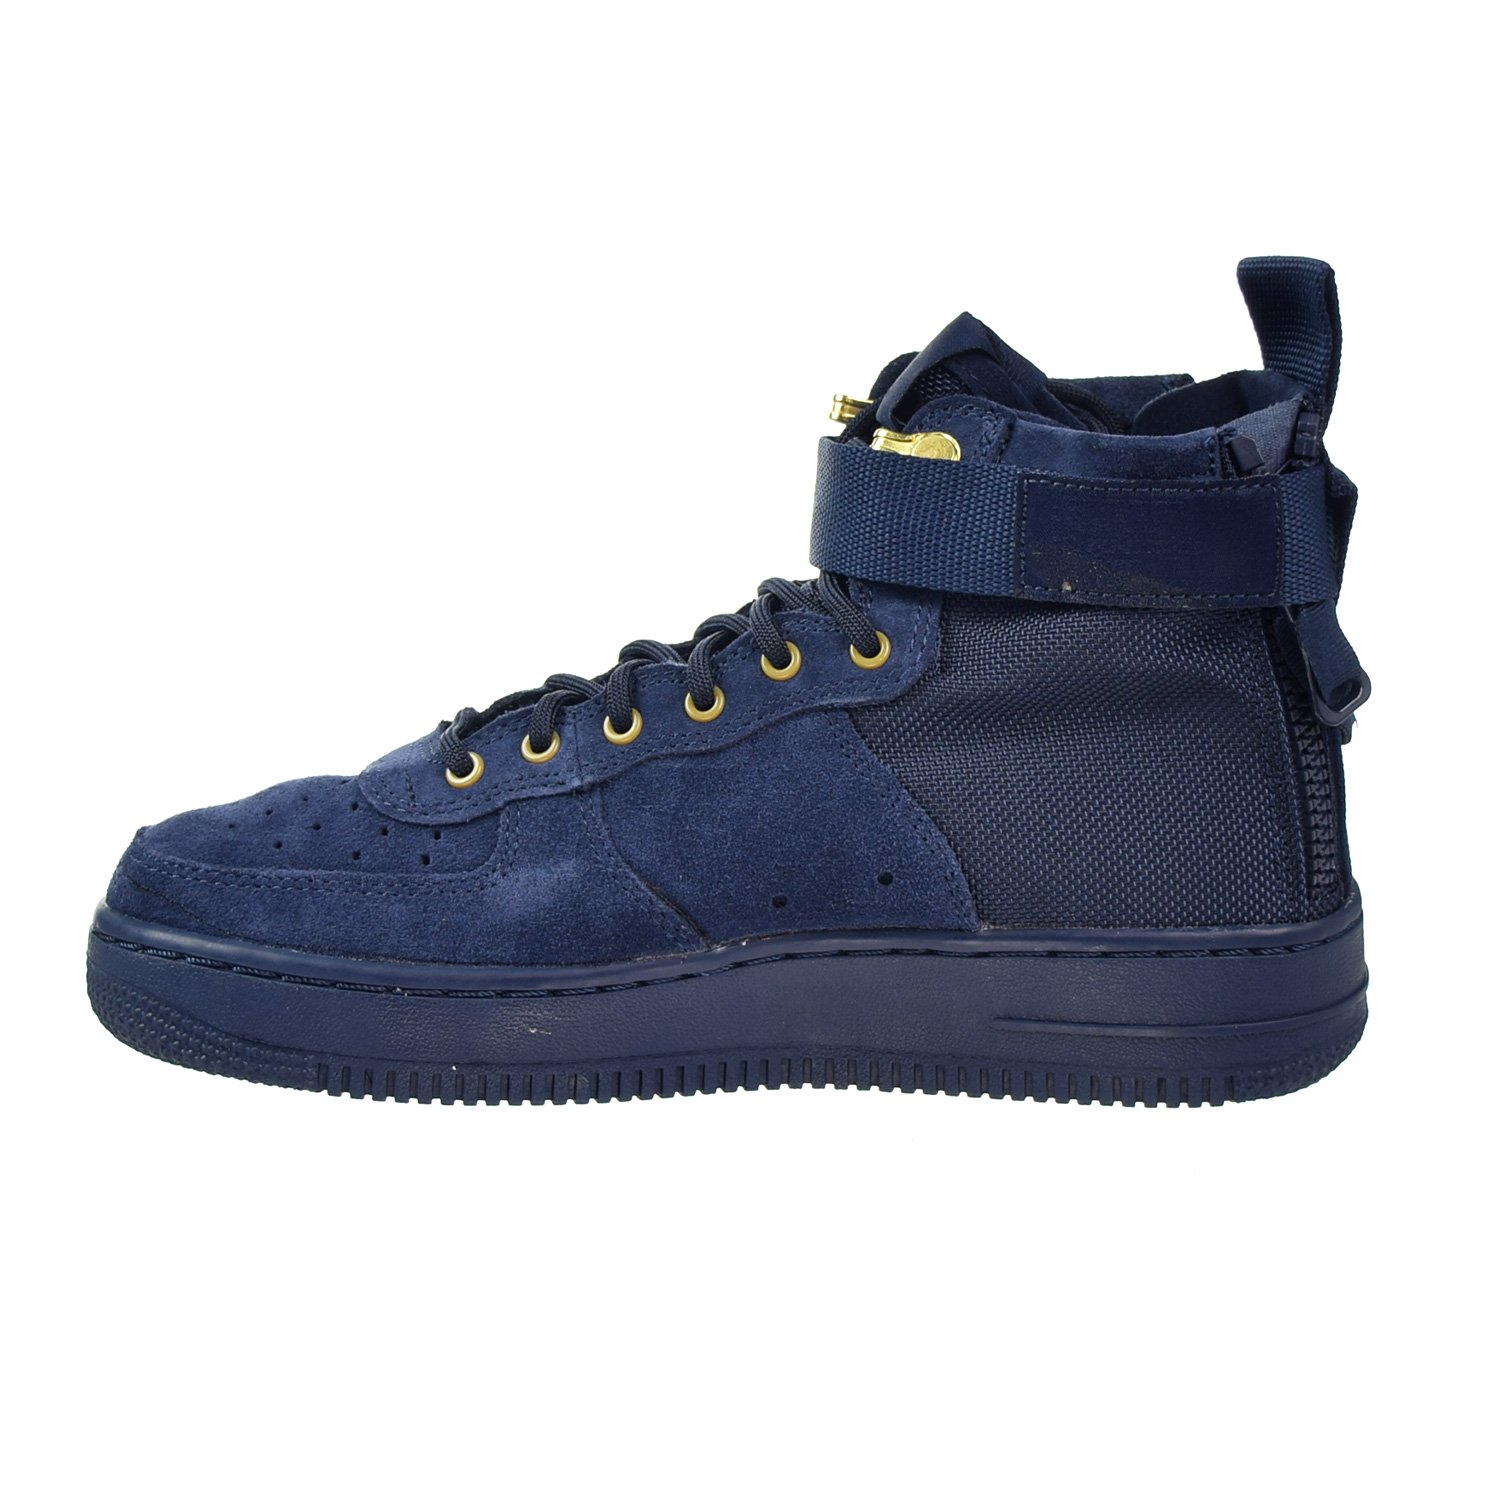 Nike SF AF1 Air Force MID Big Kids Shoes Obsidian Blue/Black aj0424-400 (3.5 M US) by Nike (Image #4)